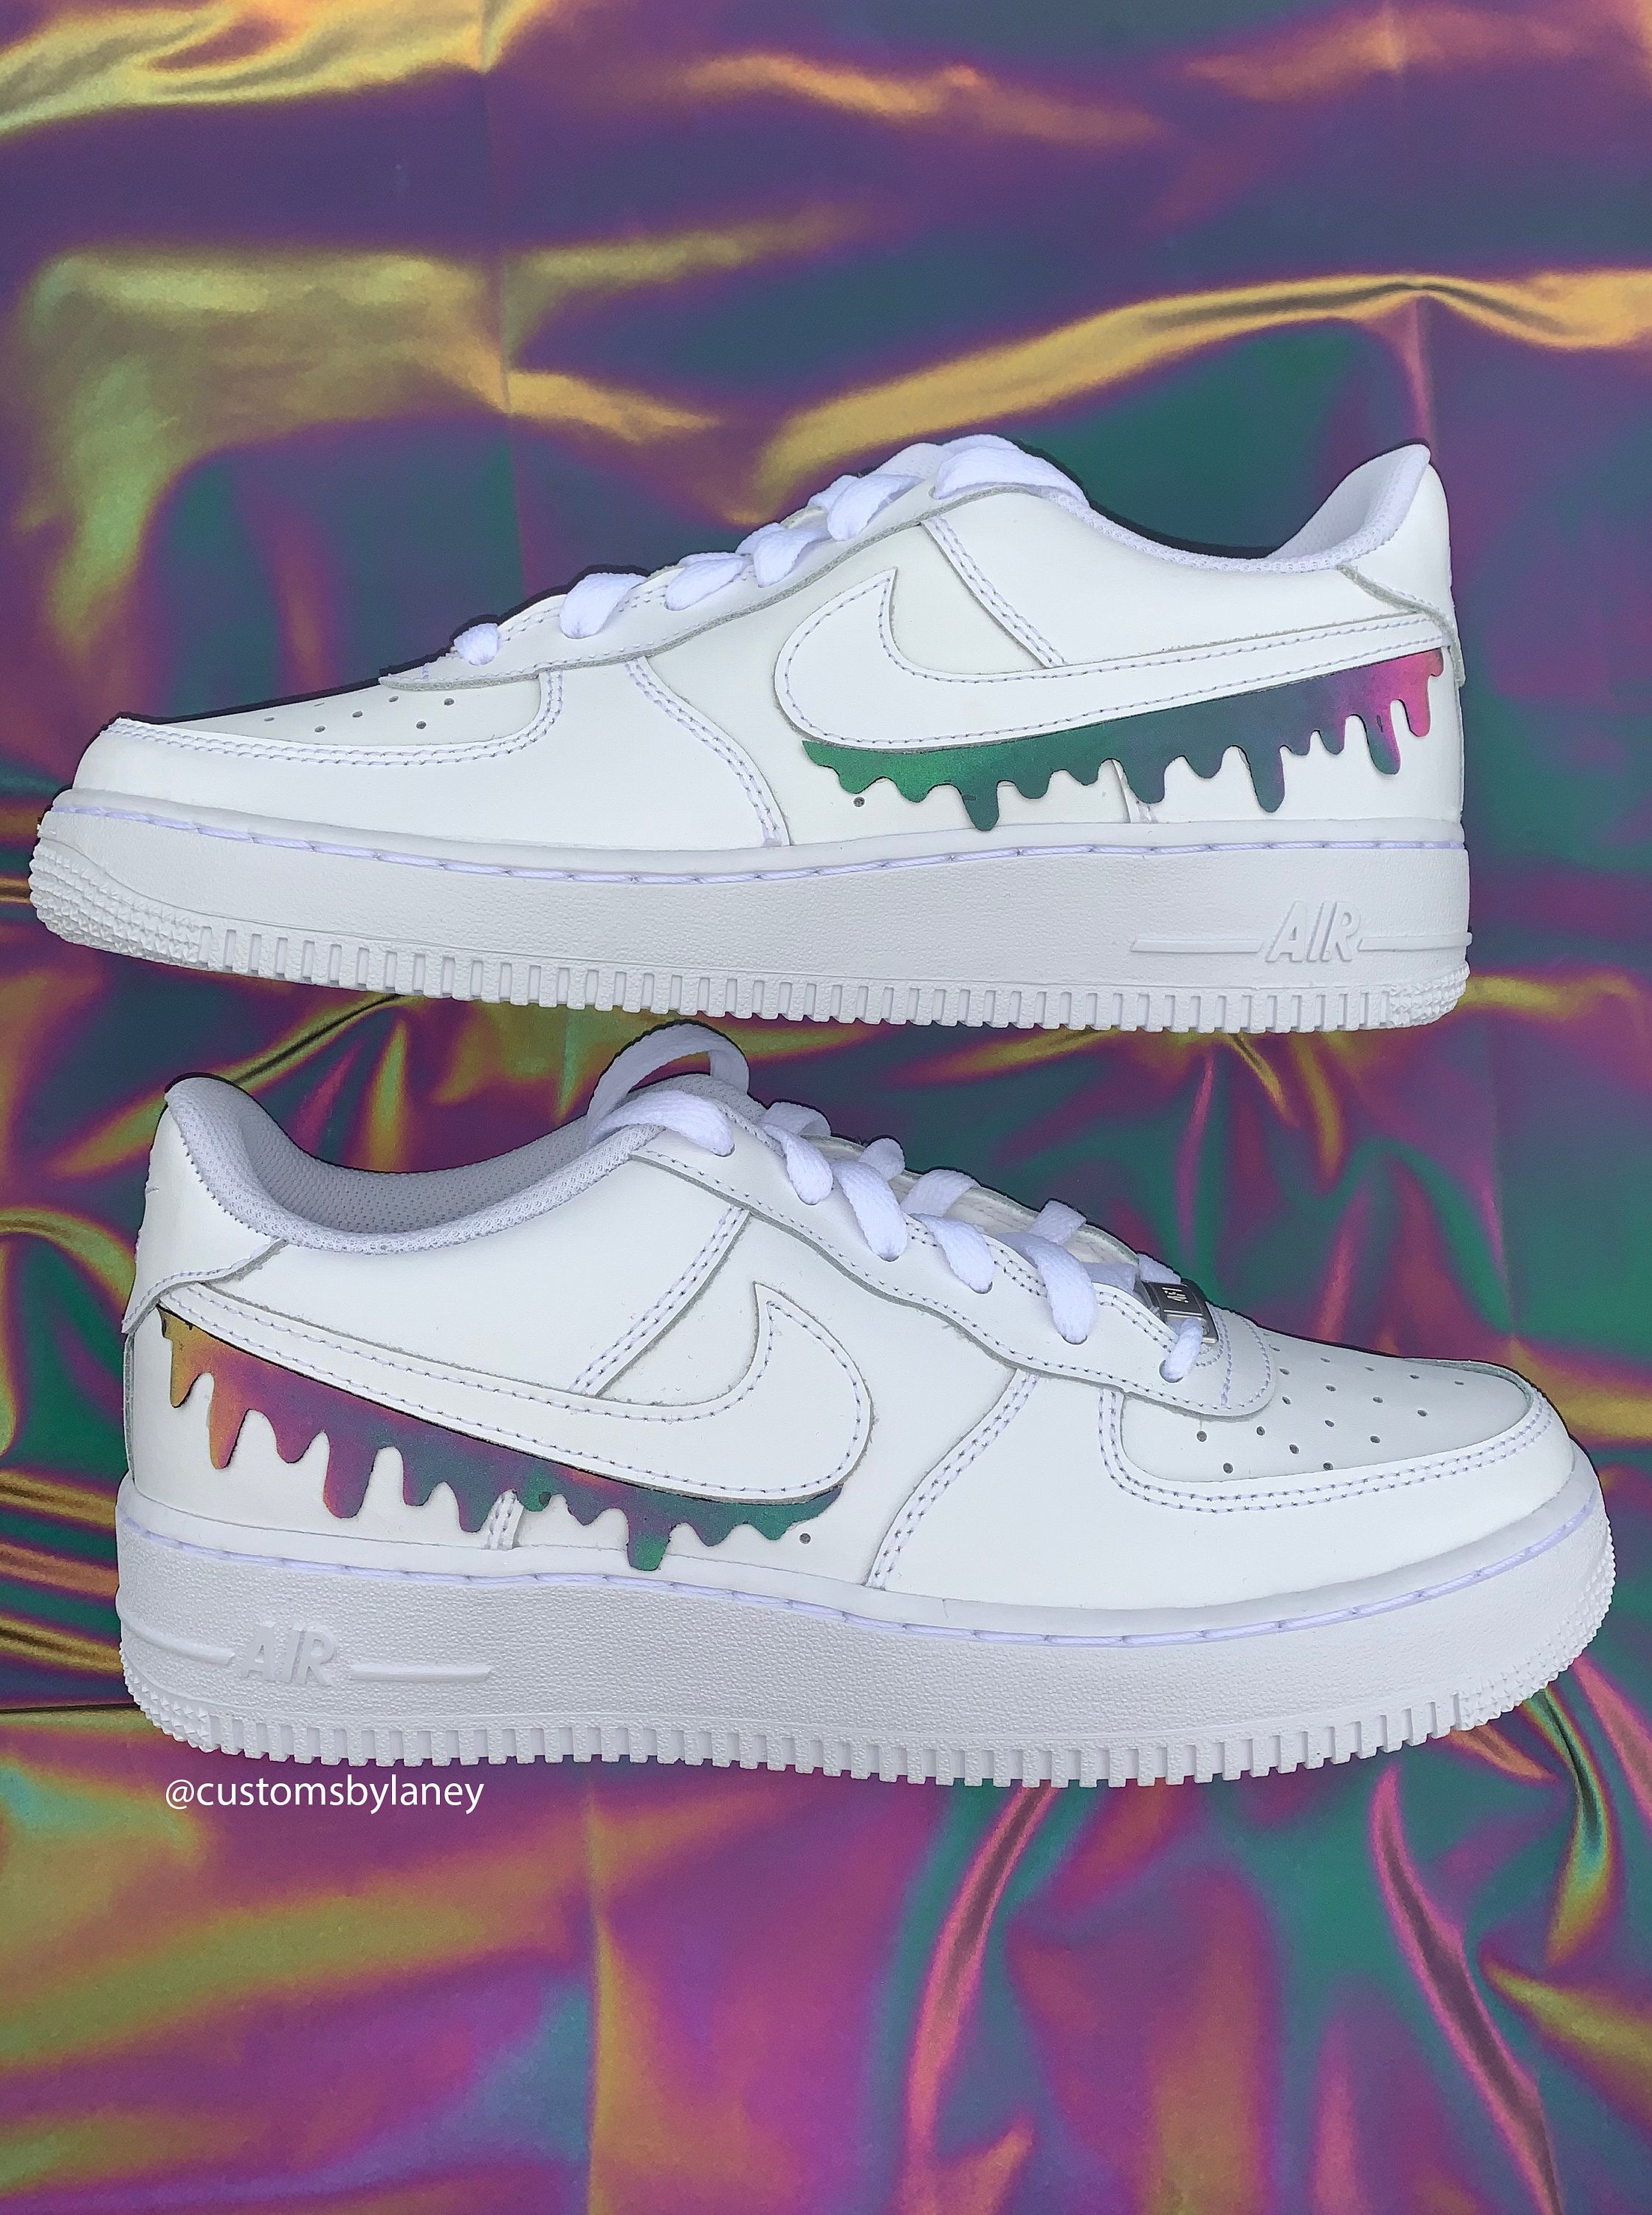 Pin on customsbylaney Air Forces